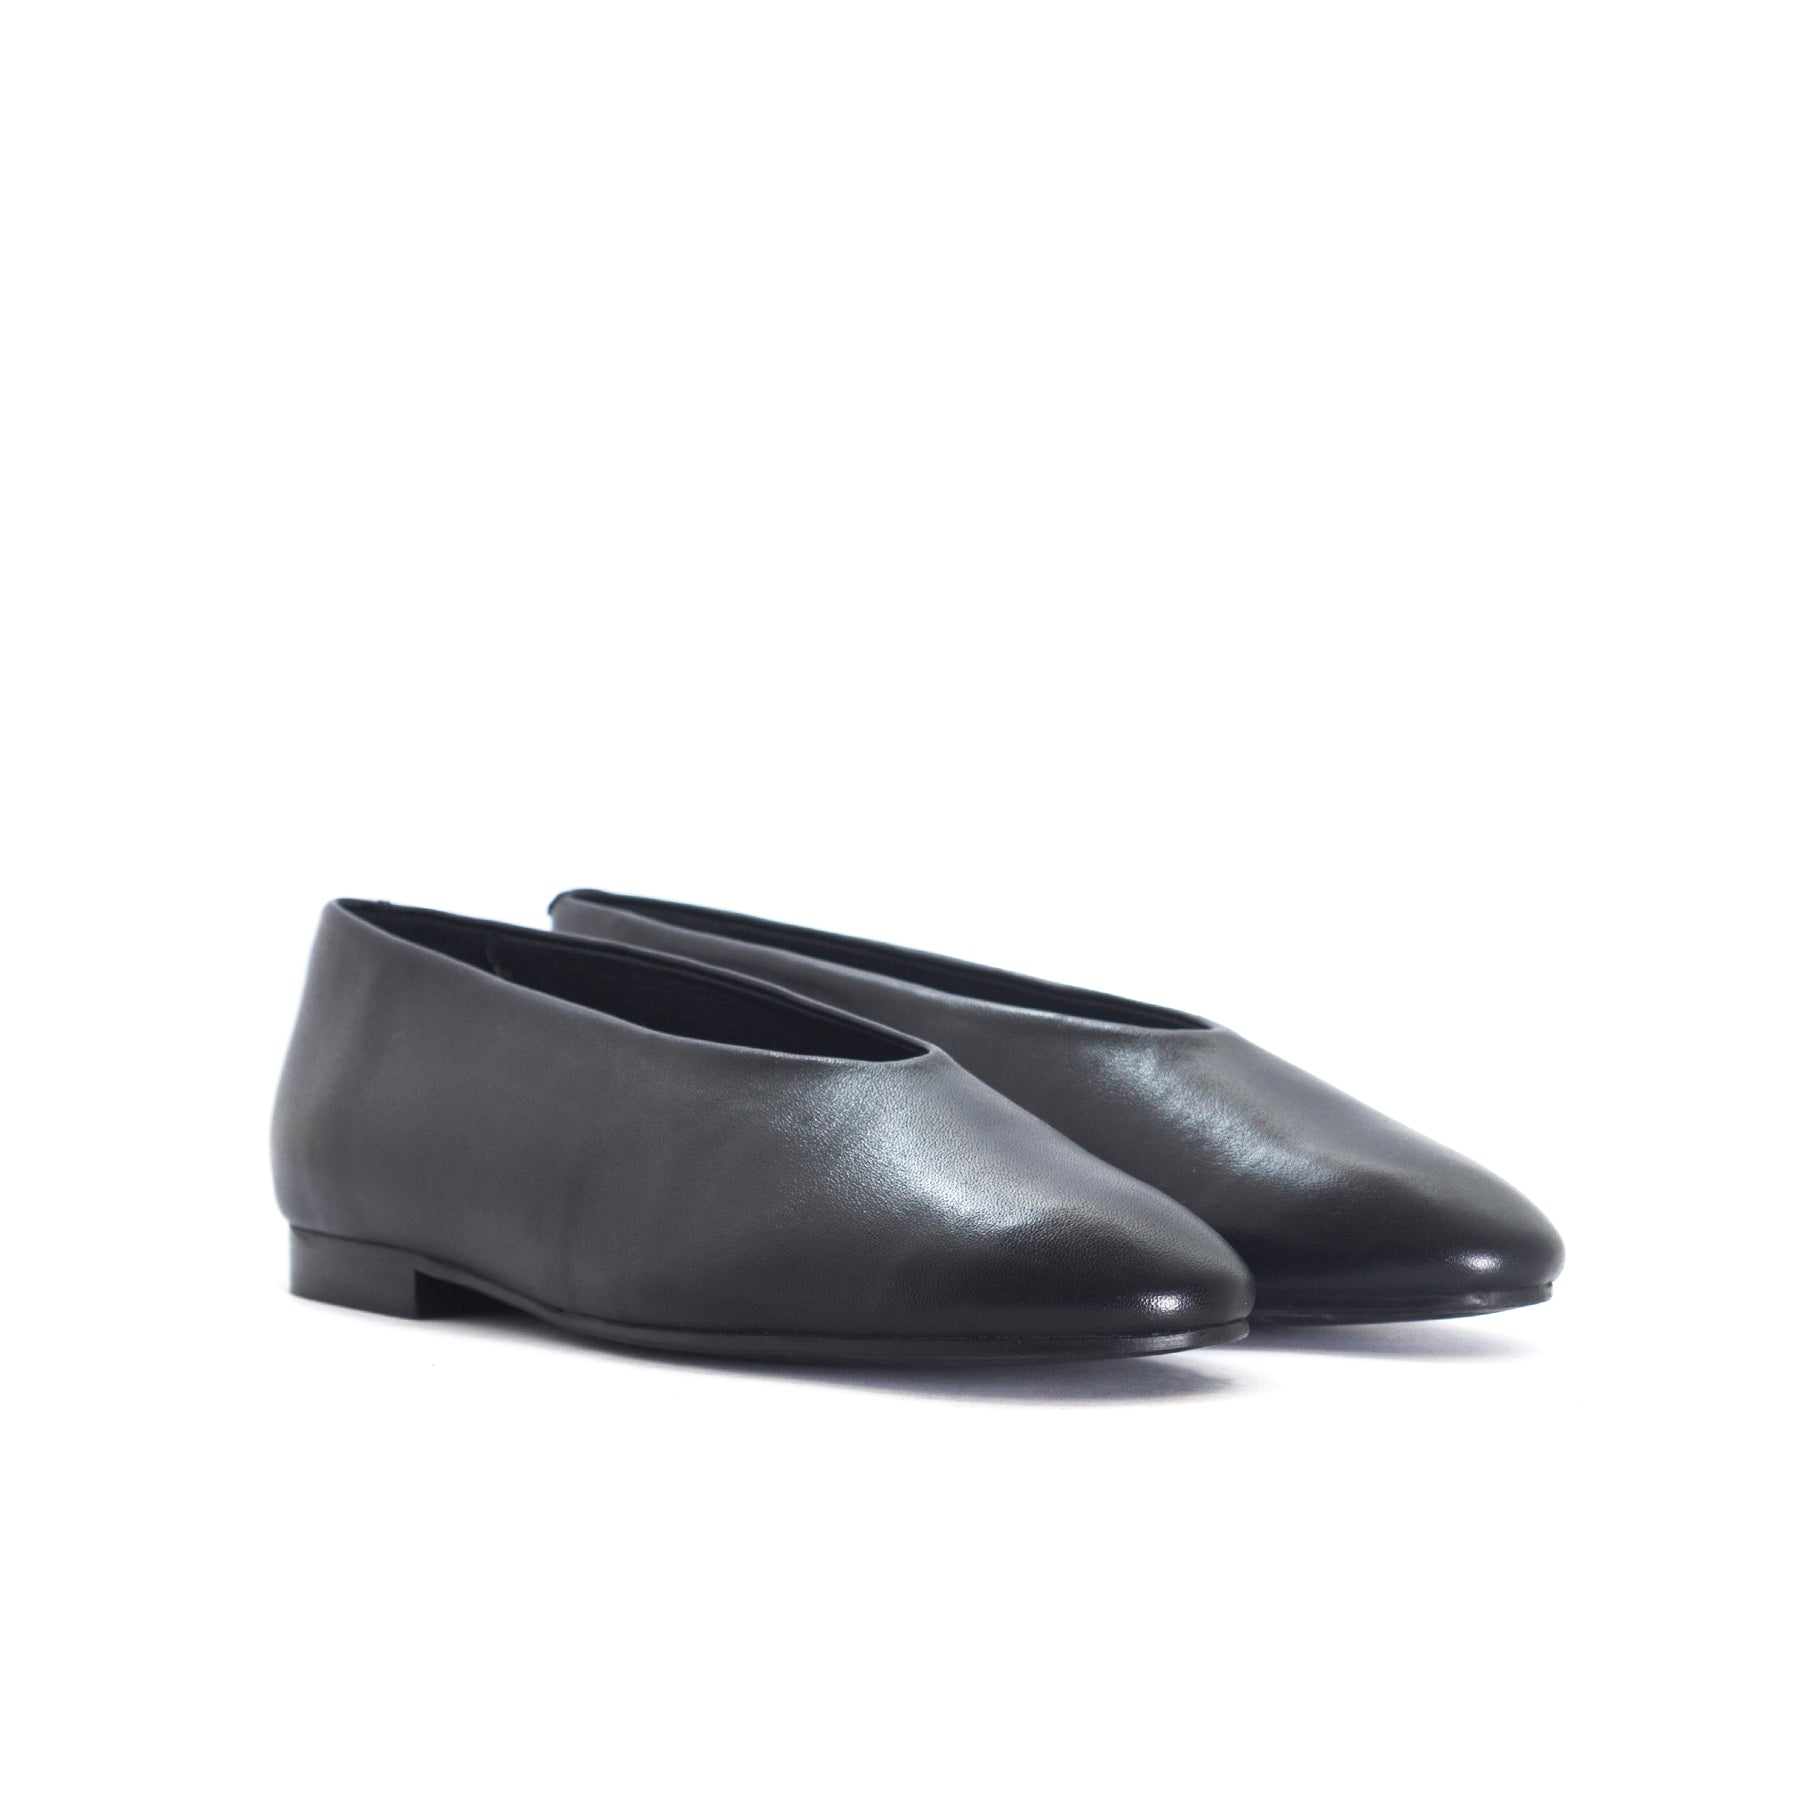 Virgo Black Leather Shoes